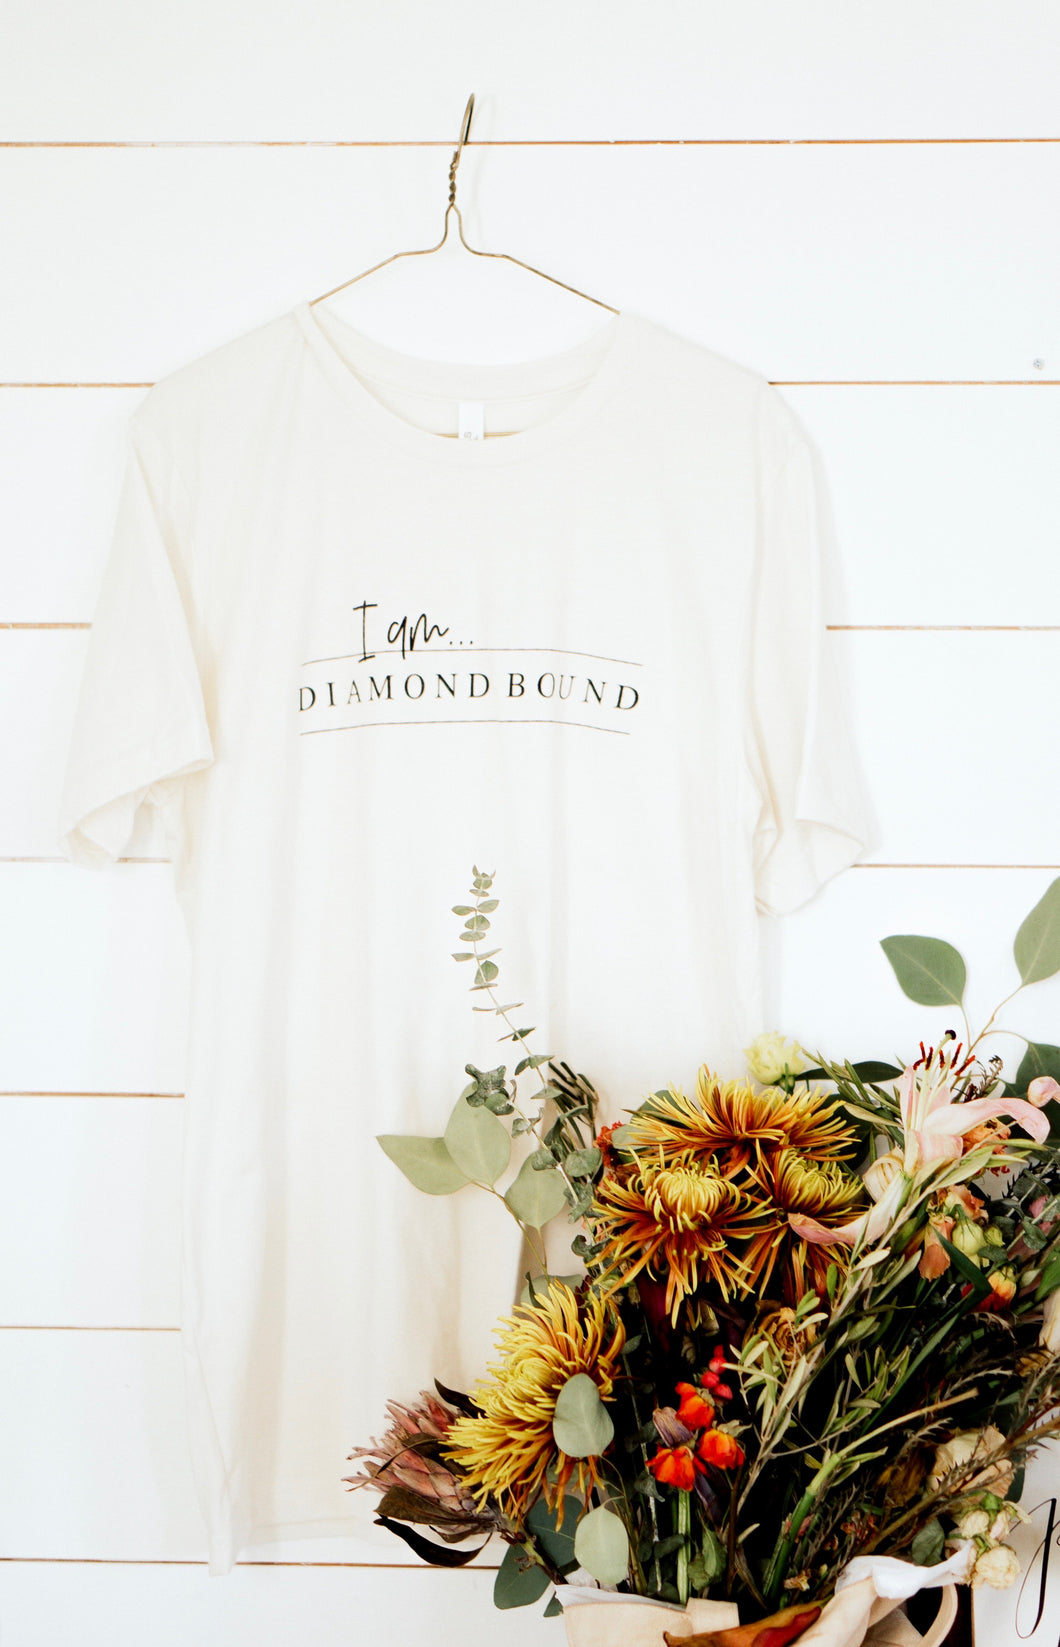 Diamond Bound 2019 tee